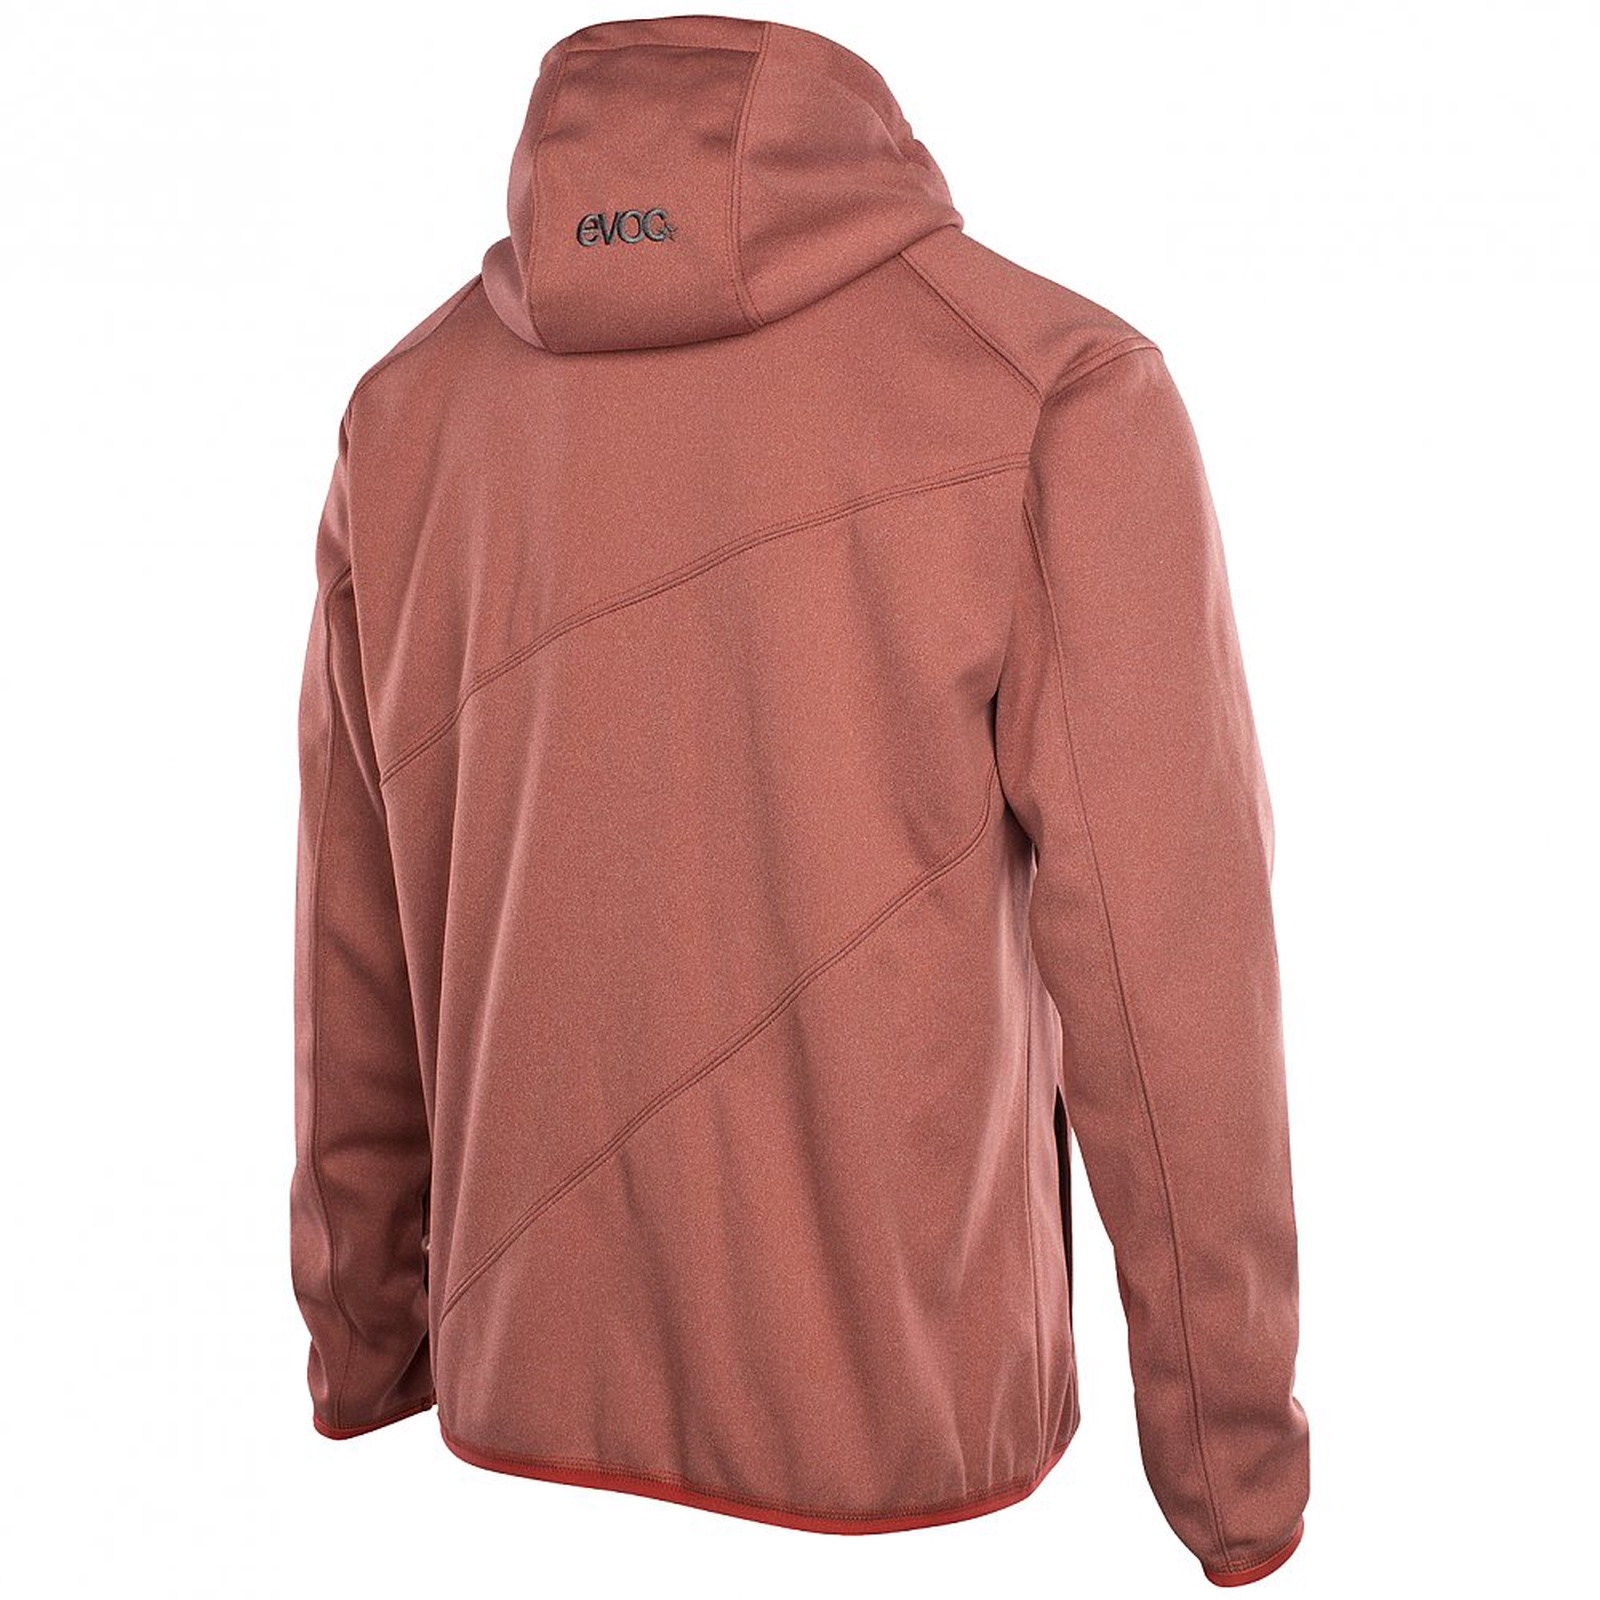 Hoody Jacket Men